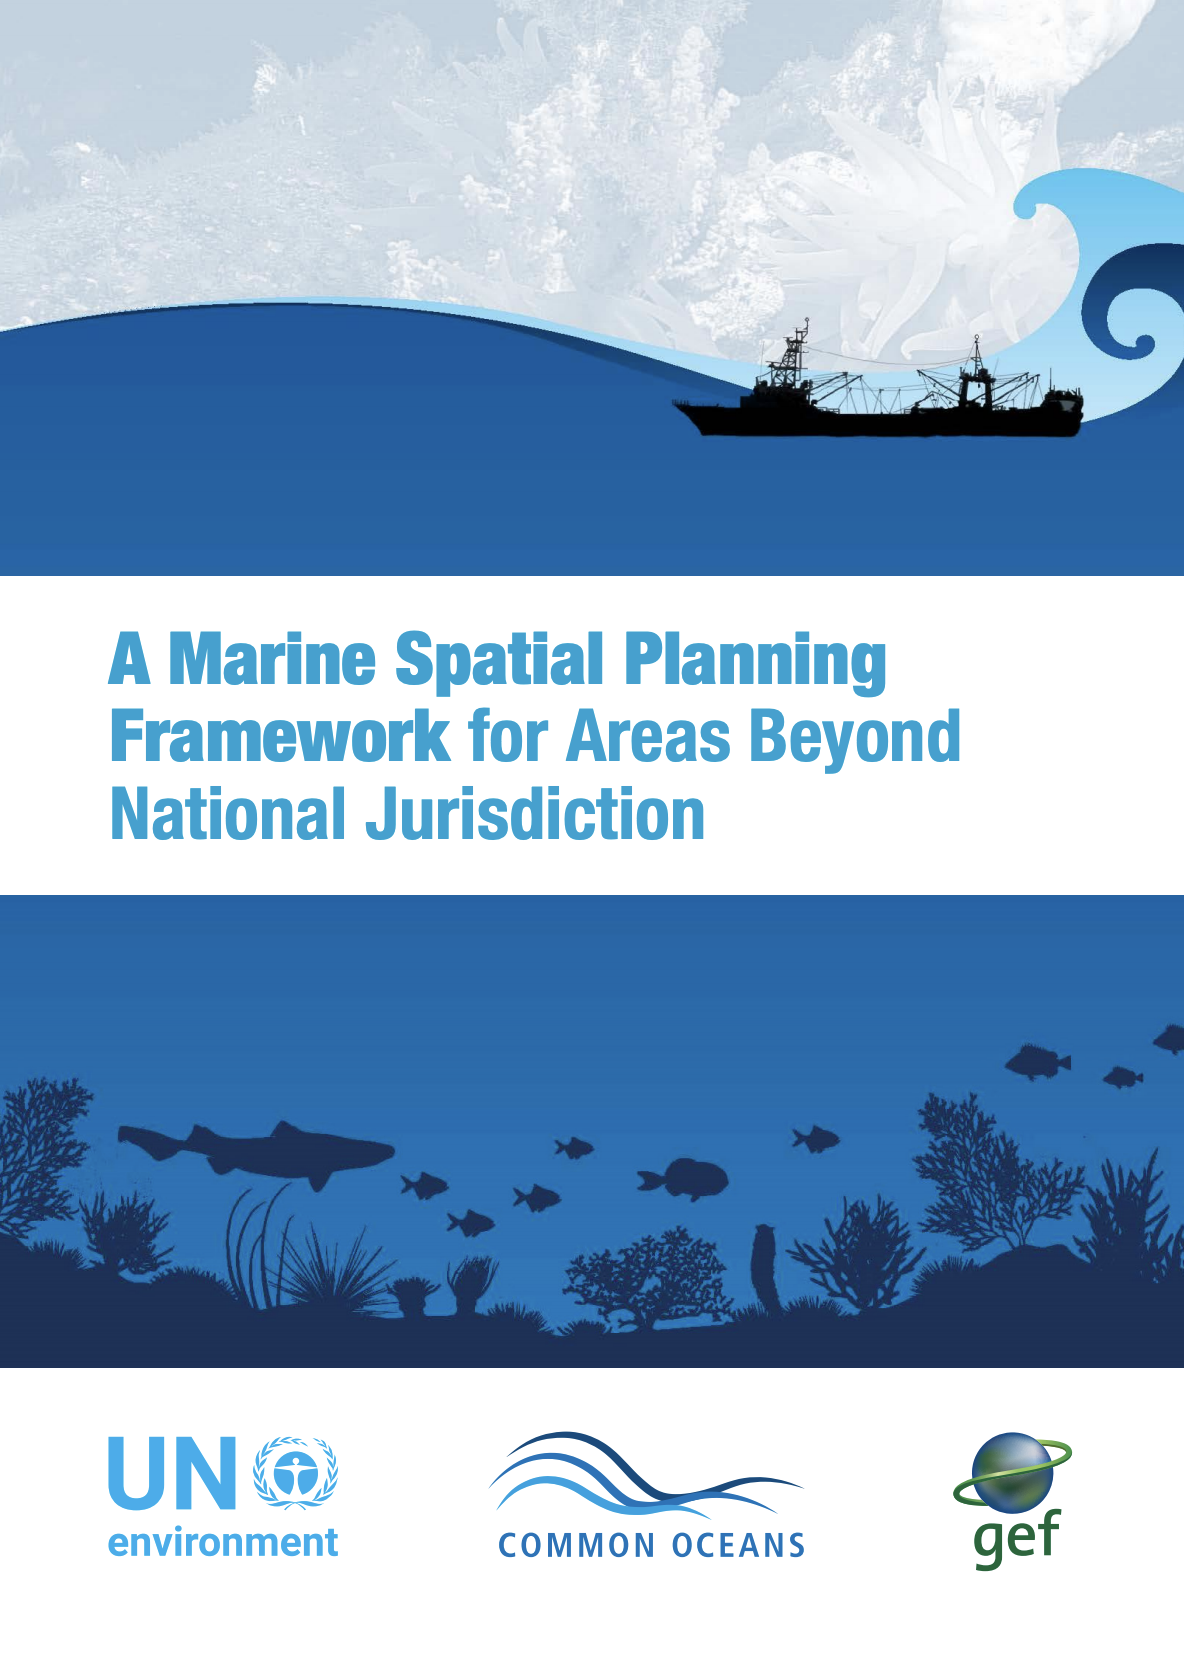 A Marine Spatial Planning Framework for Areas Beyond National Jurisdiction